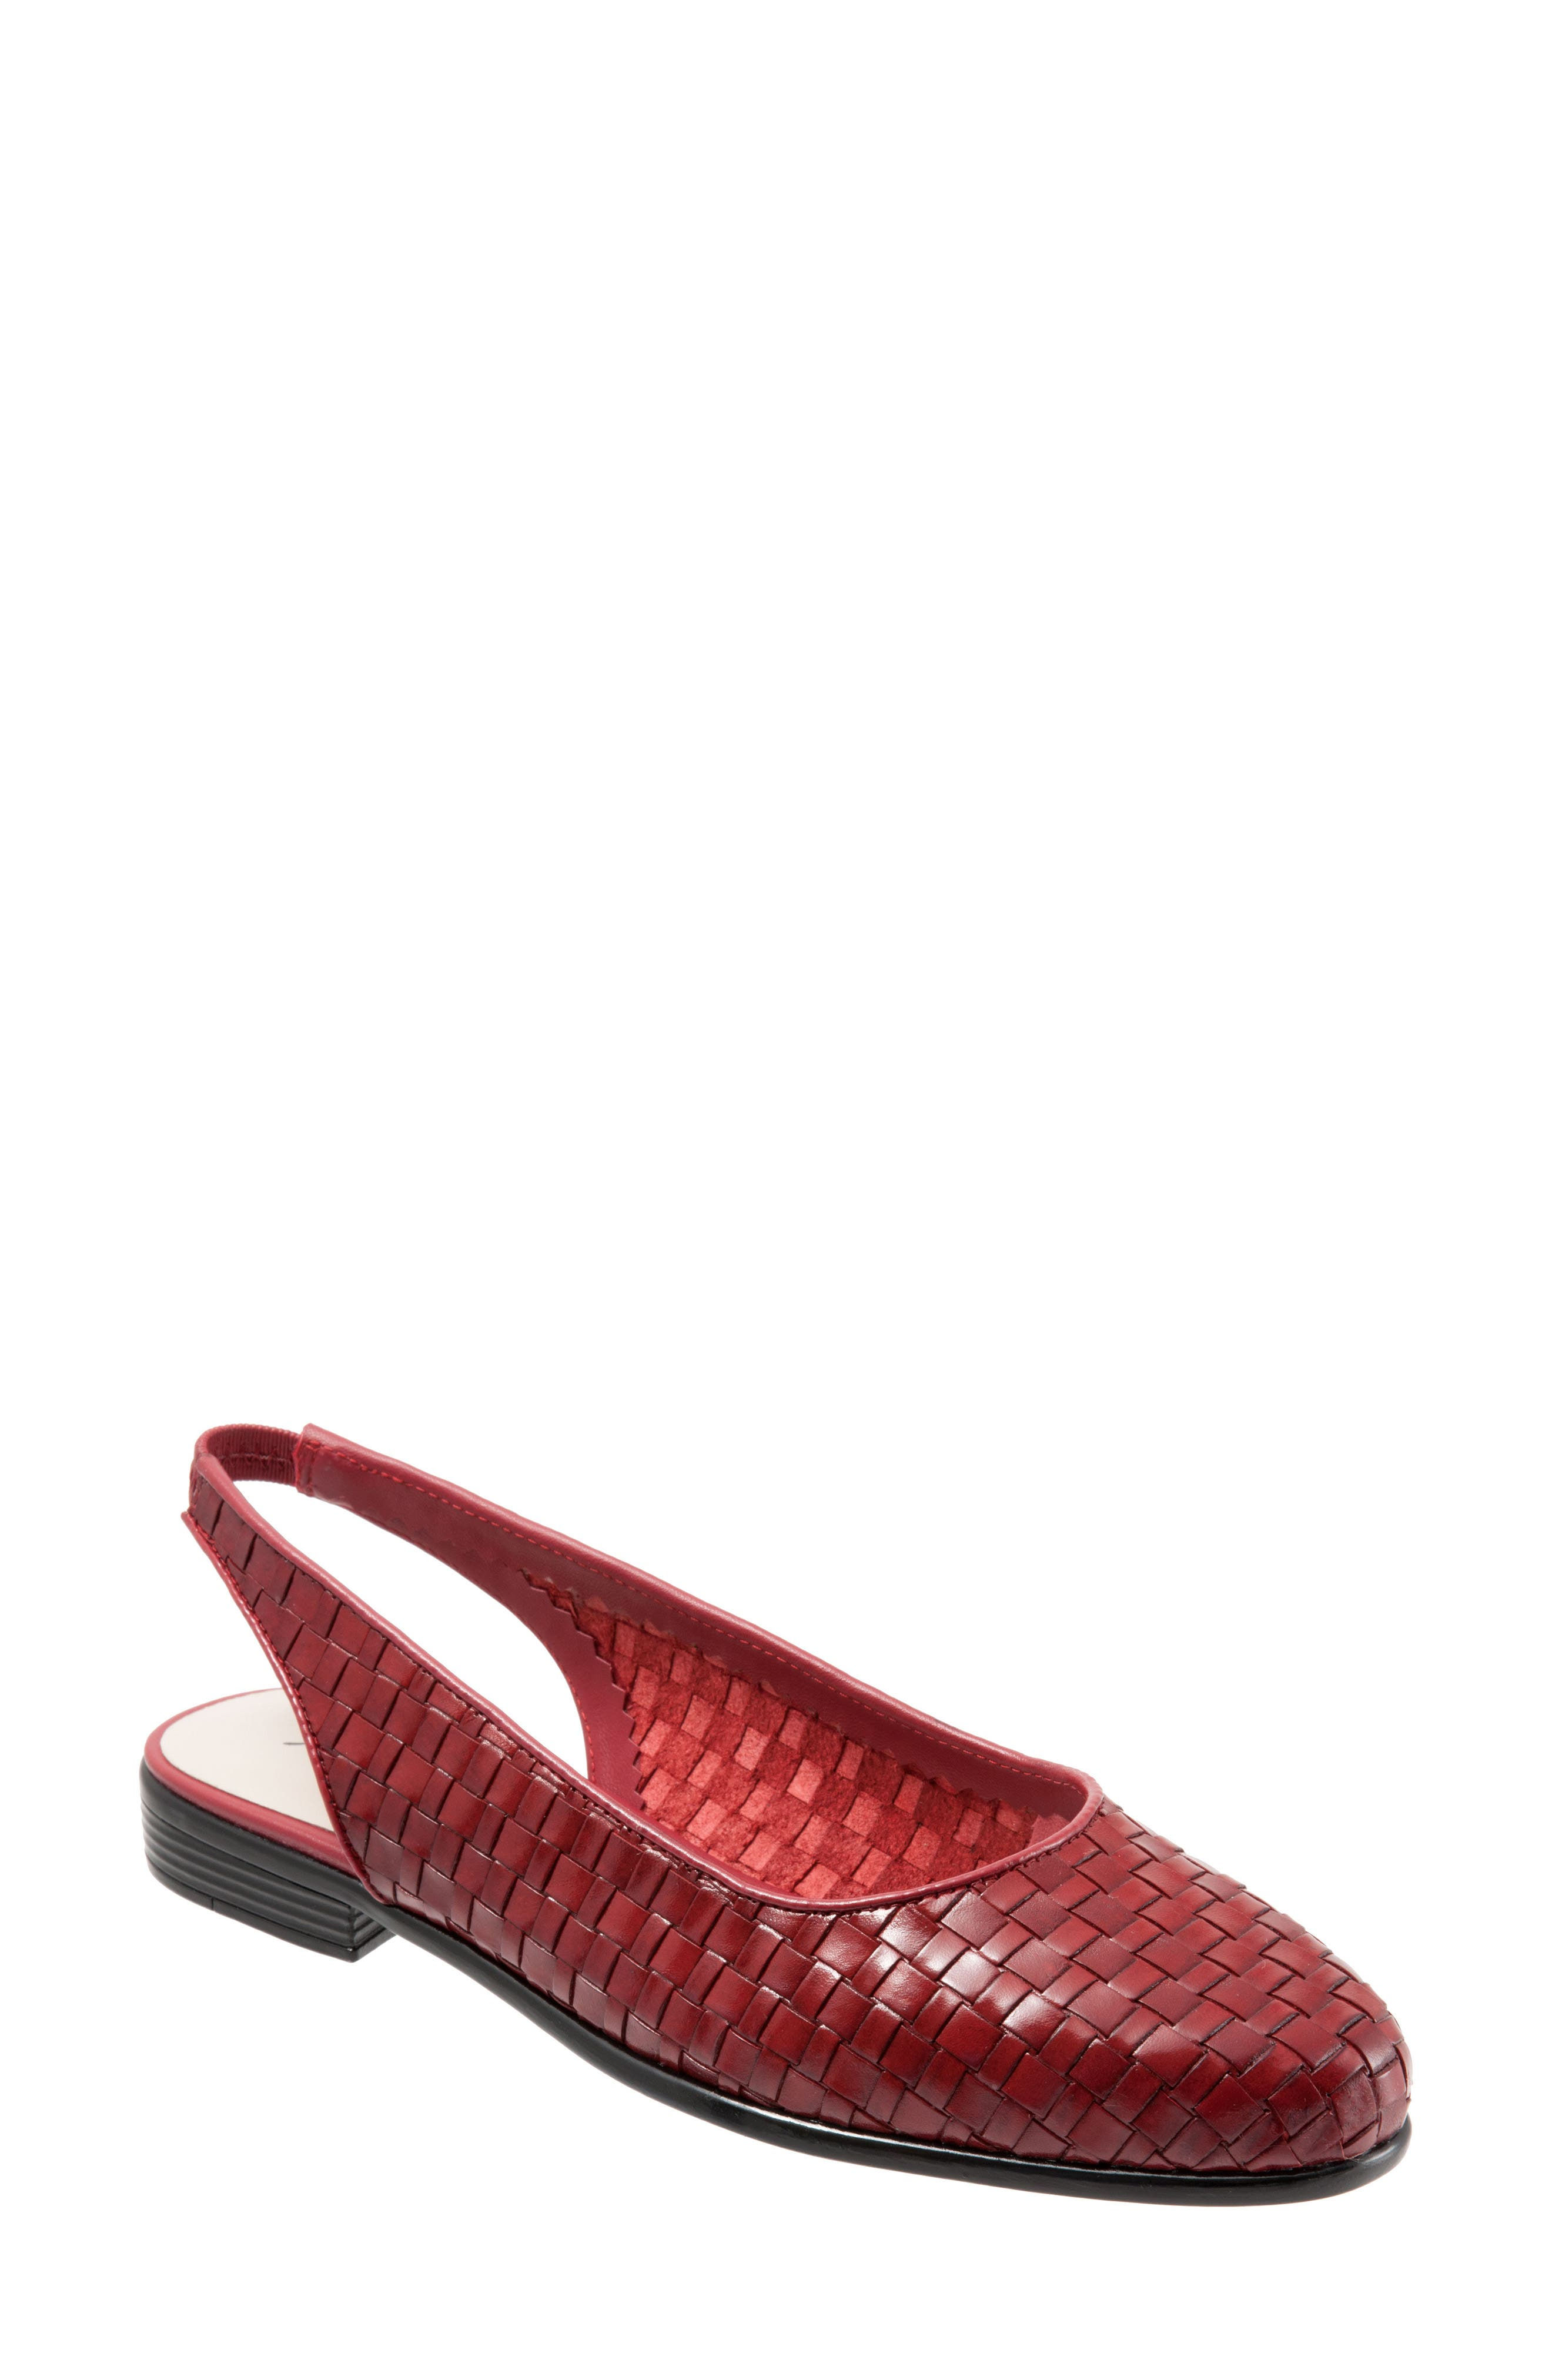 TROTTERS, Lucy Slingback Flat, Main thumbnail 1, color, RED LEATHER